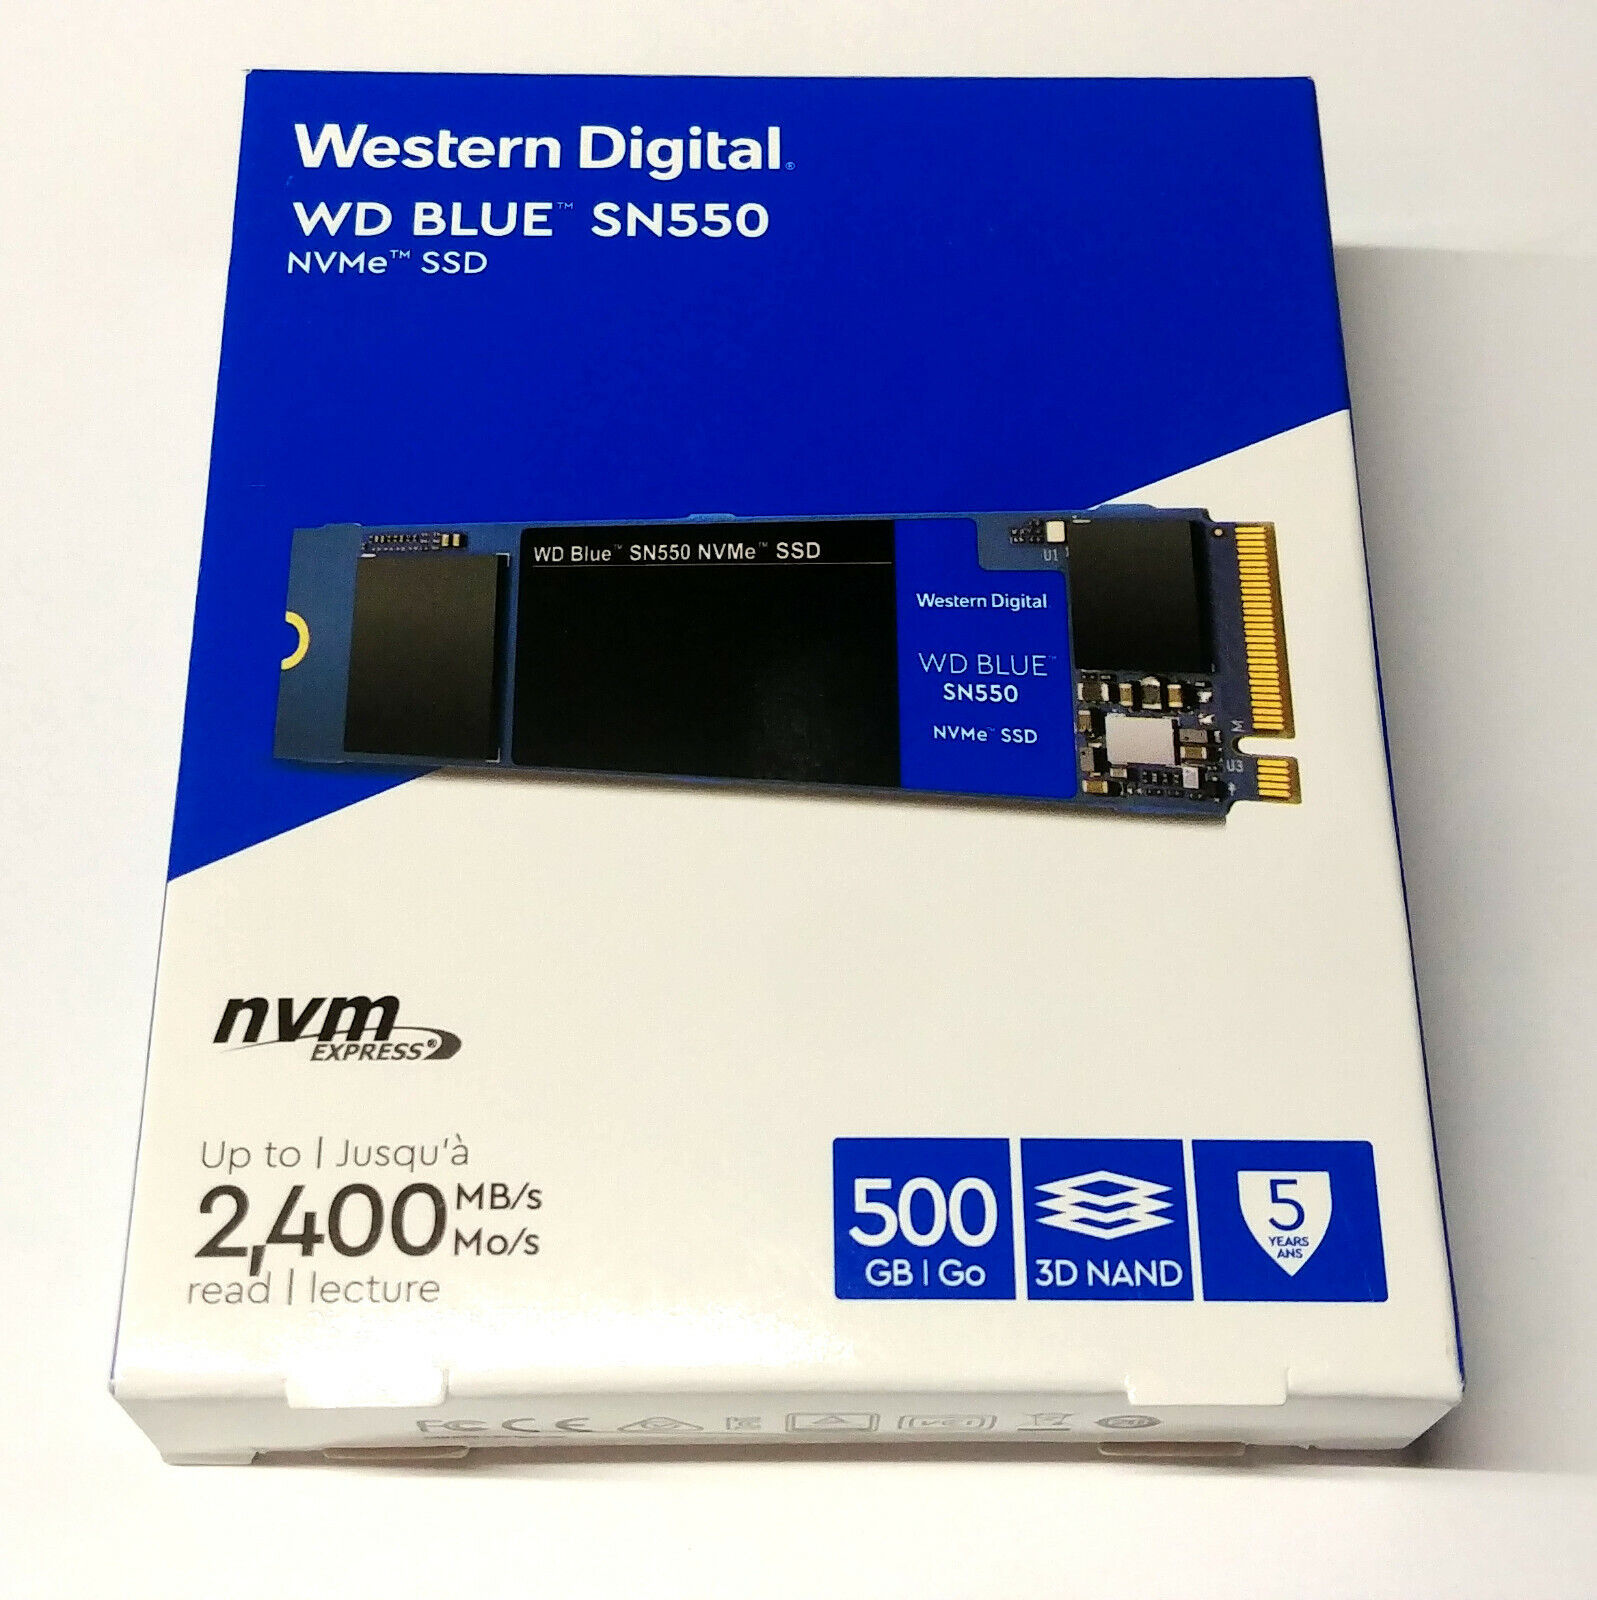 Western Digital Blue SN550 NVMe 500GB Solid State Drive (SSD), Internal M.2 2280. Buy it now for 57.95